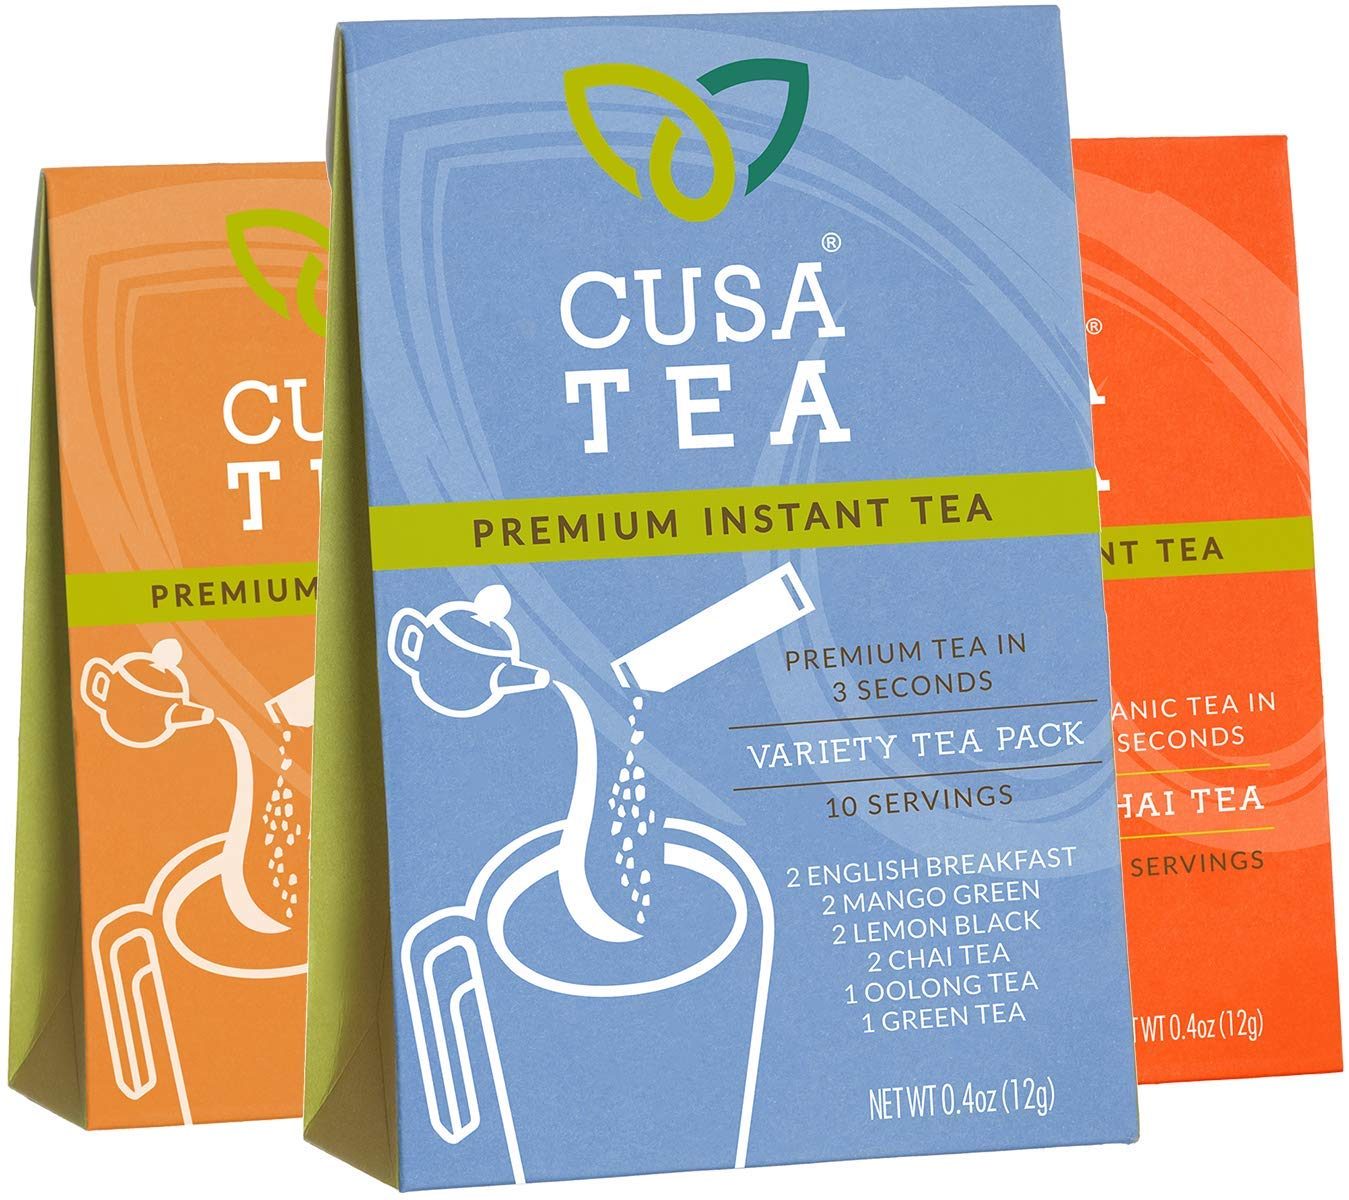 Cusa Tea Variety Packs and Bundles: Premium Instant Tea - No Sugar or Artificial Ingredients - Ready in Seconds - Iced or Hot (Variety Pack, Mango Green, Spicy Chai)